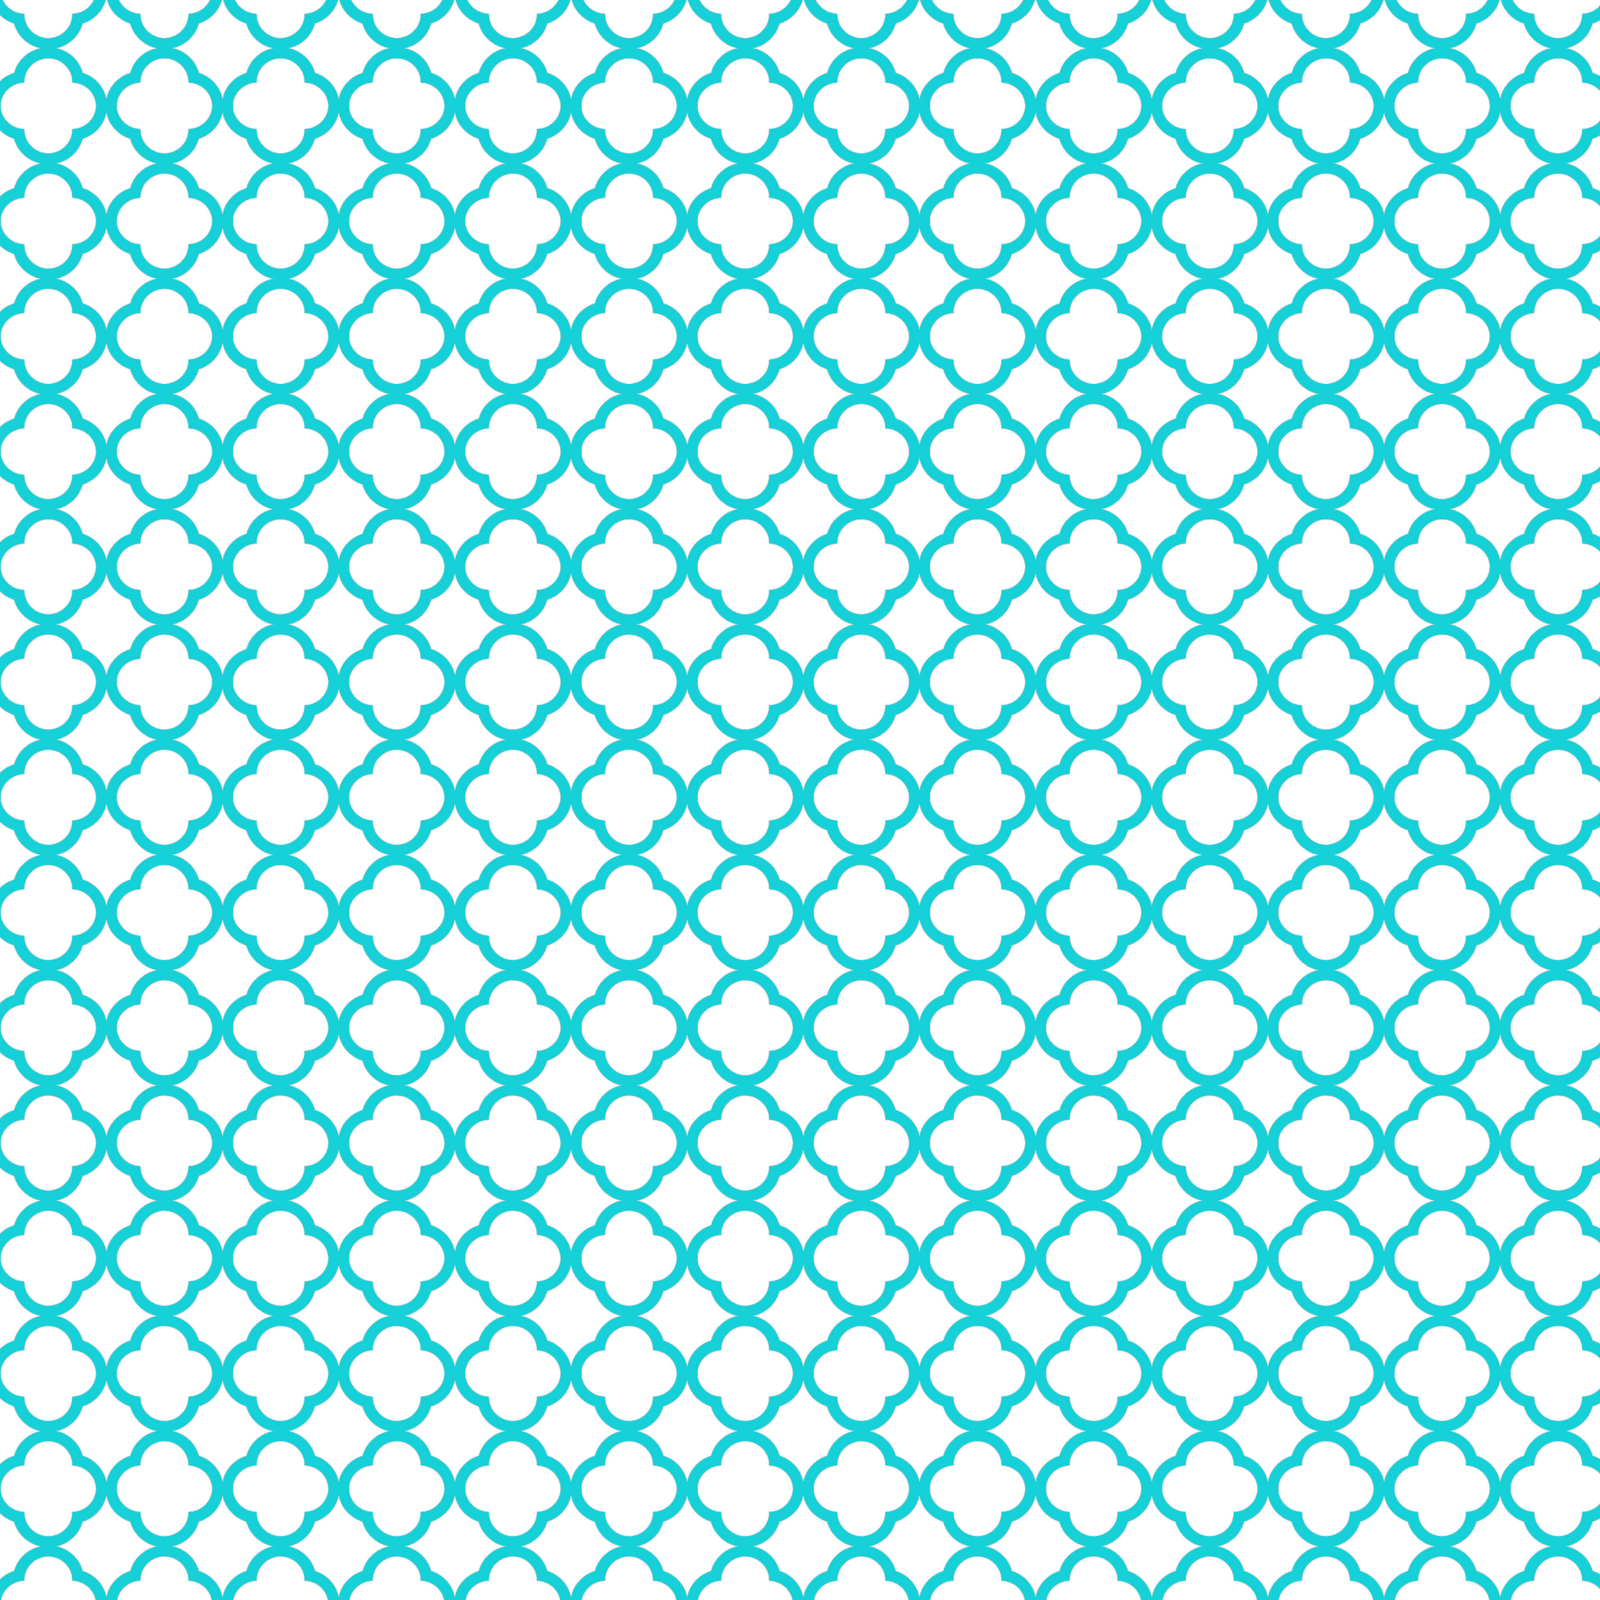 Doodlecraft: More Free Printable Patterns! - Free Printable Moroccan Pattern